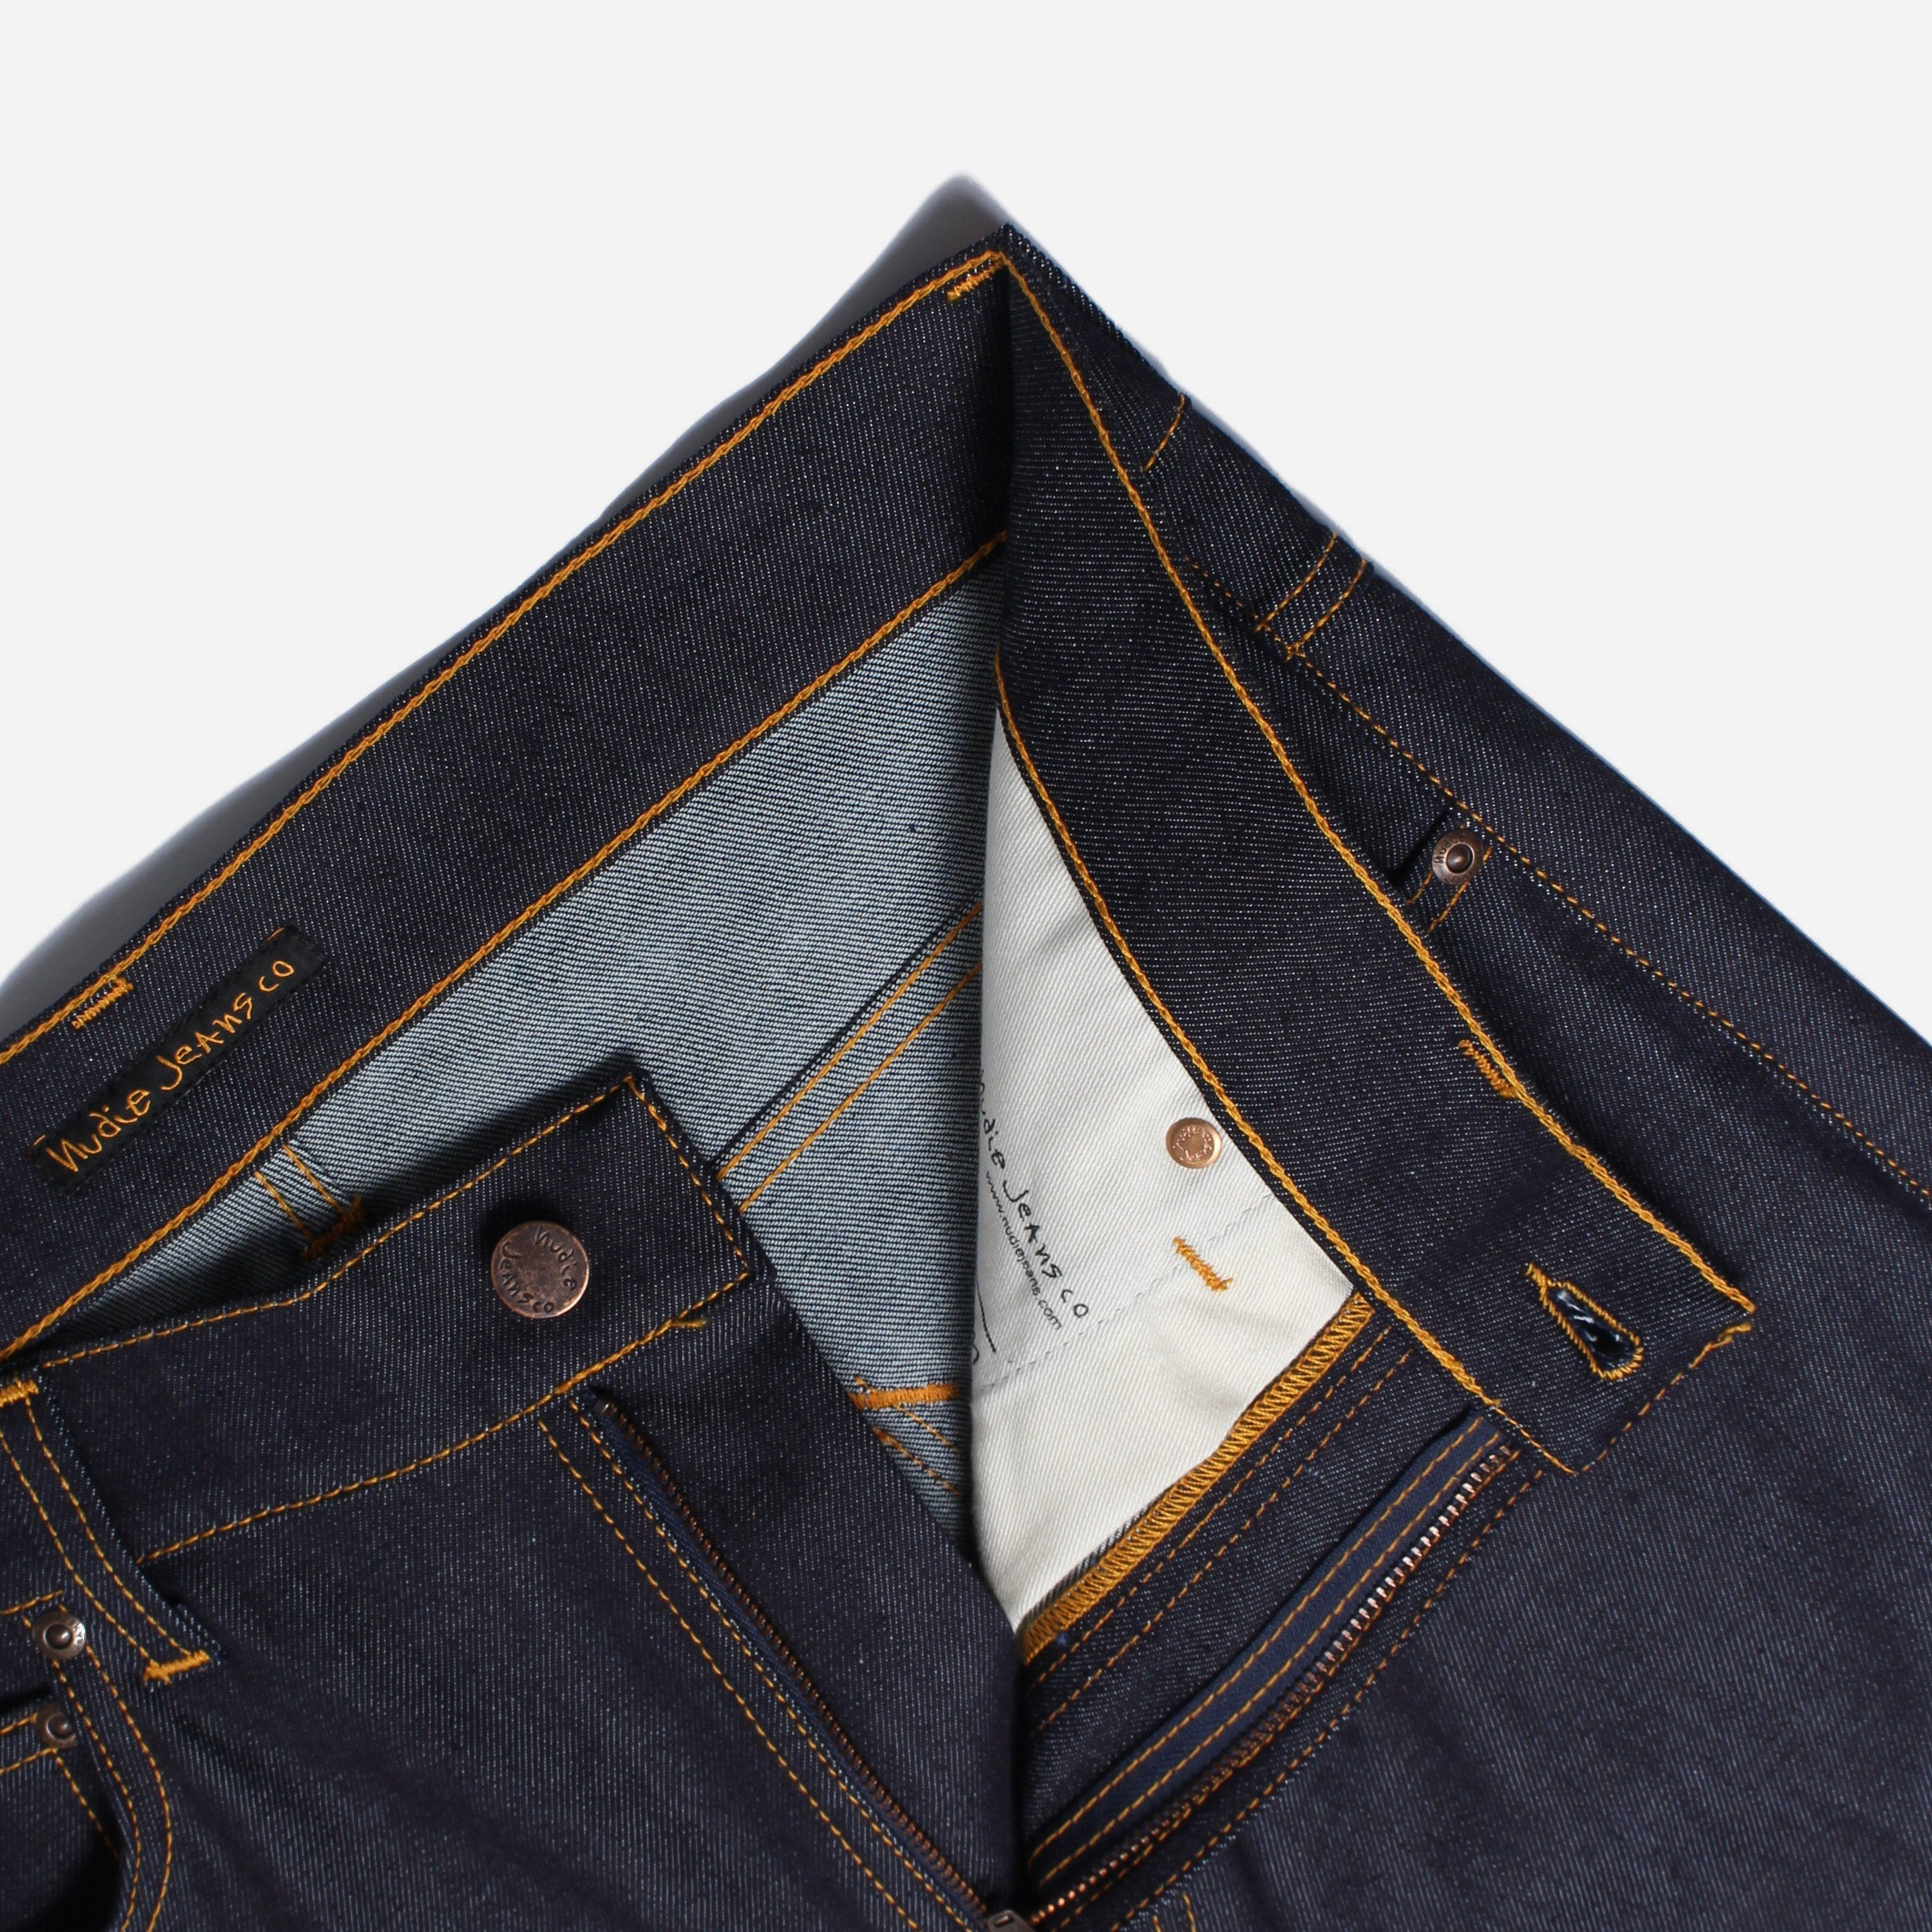 Nudie Jeans Co. Lean Dean Dry 16 Jeans